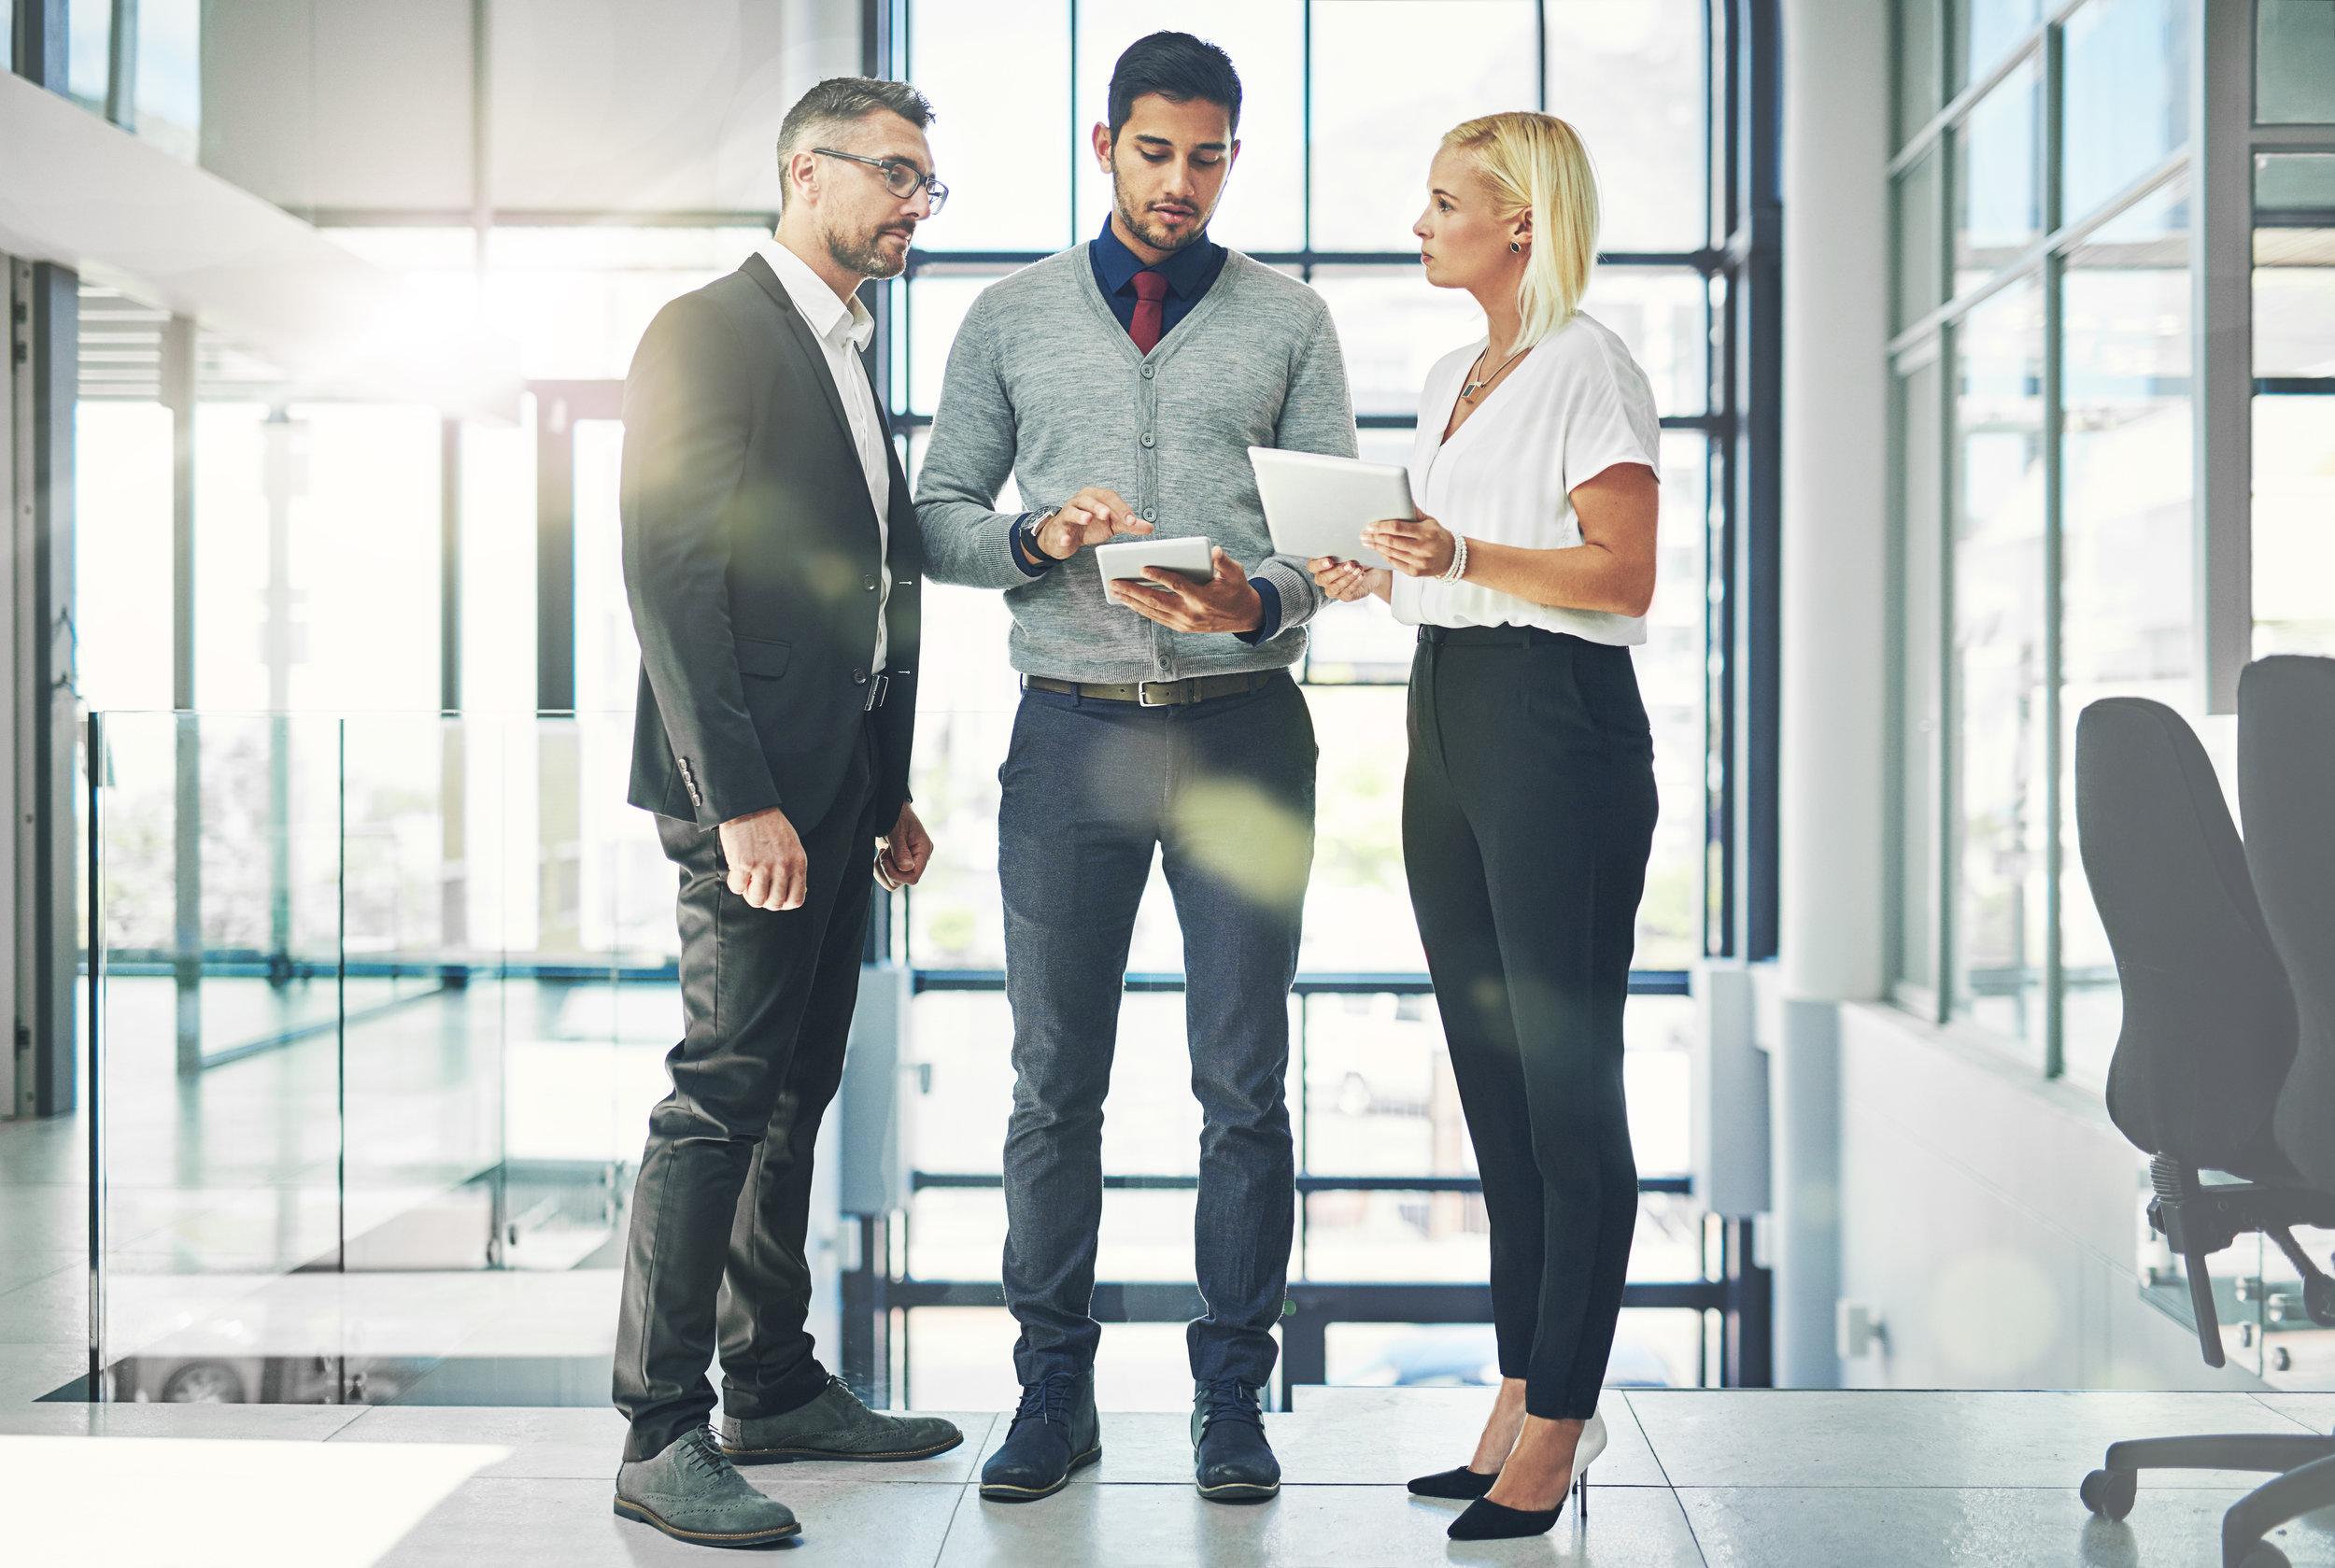 RELATIONAL COMMUNICATION FOR MANAGERS: BOOST EMPLOYEE ENGAGEMENT AND ACCOUNTABILITY - Learn how to build your trust, credibility and influence and create strong relationships with your teams and stakeholders.